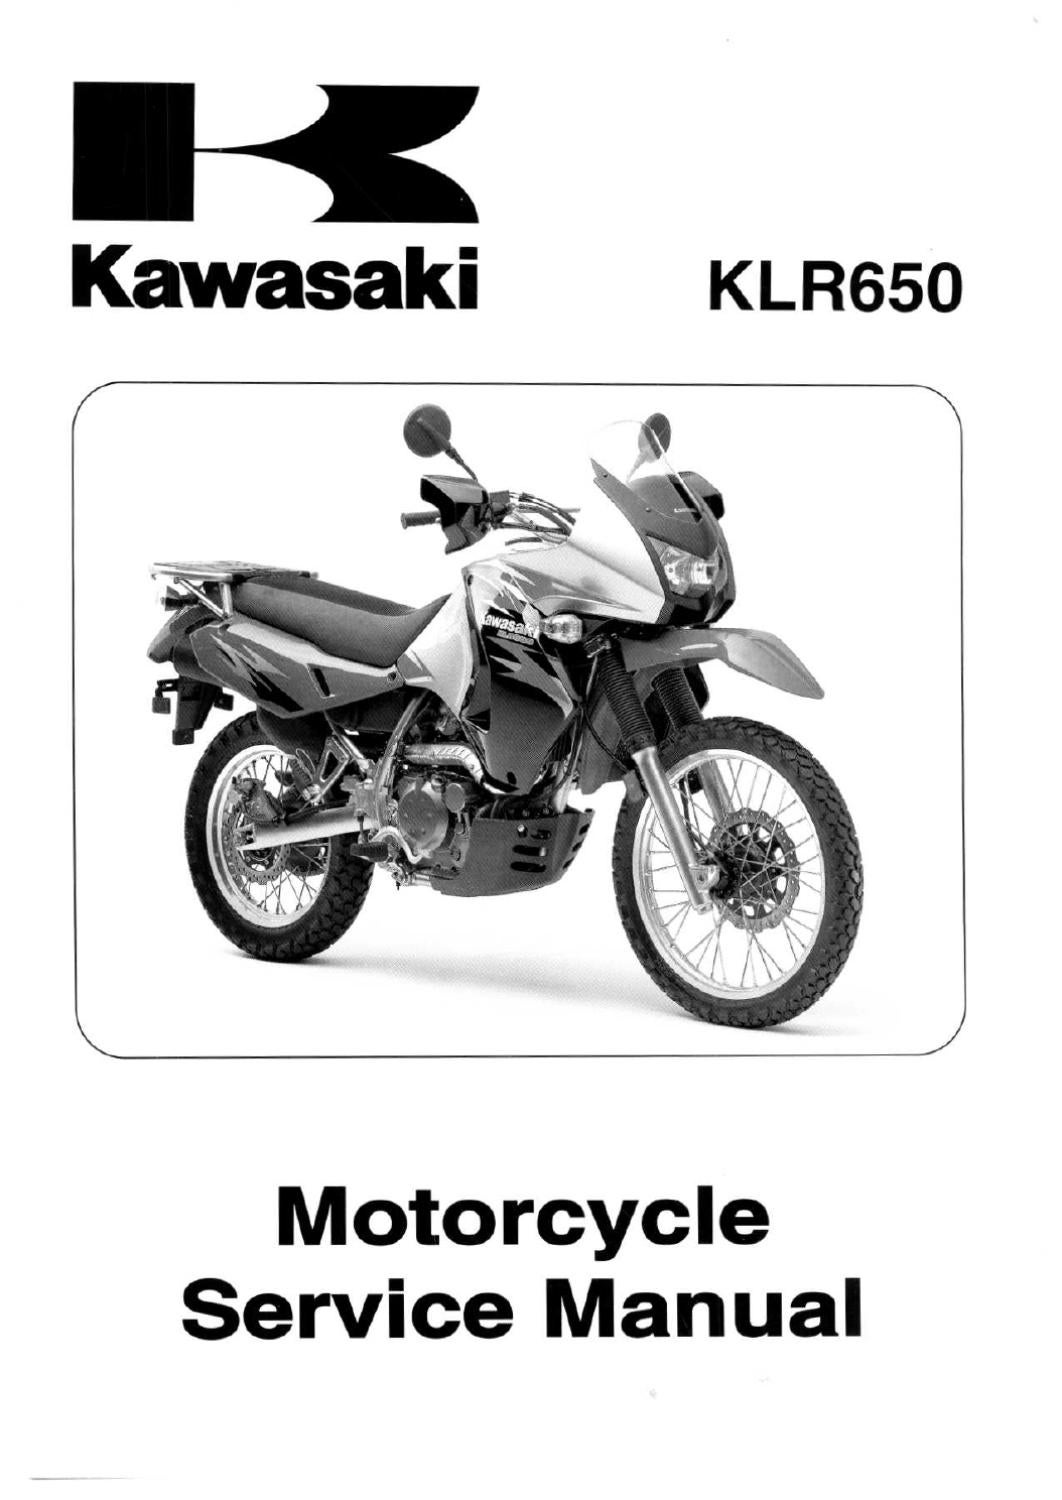 Kawasaki Klr650 Wiring Diagrams Danfoss Refrigerator Start